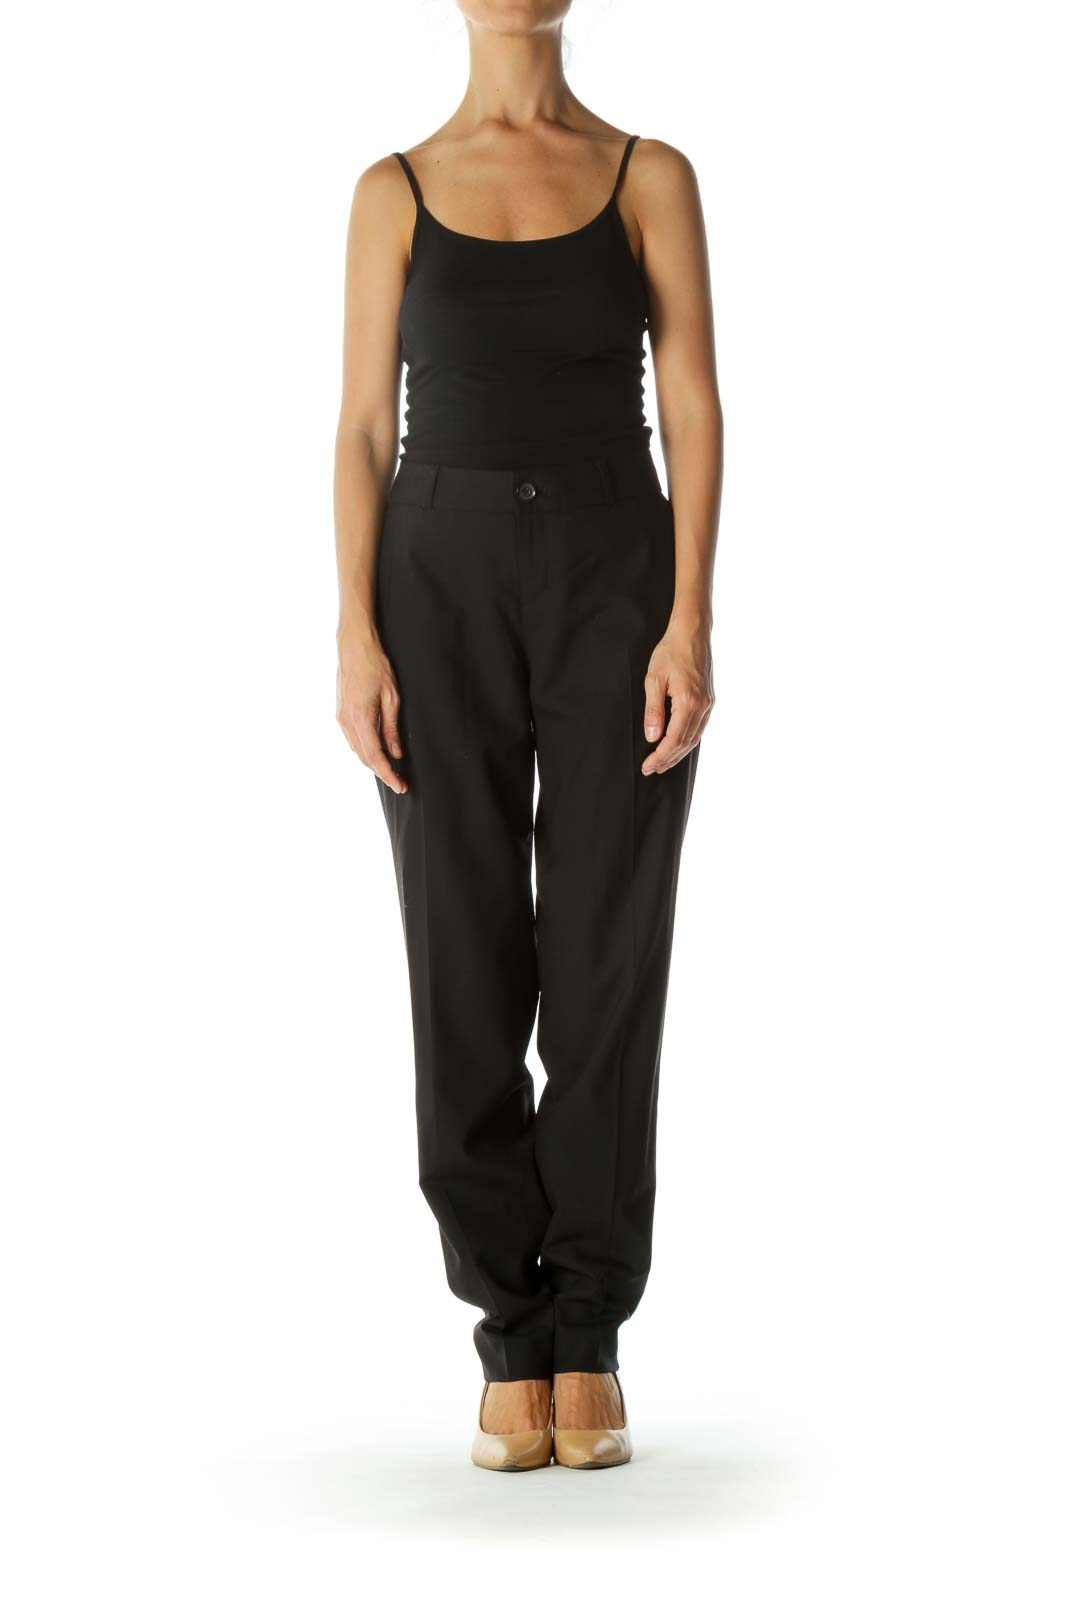 Black Single-Button Closure Pocketed Stretch Slacks (Long)